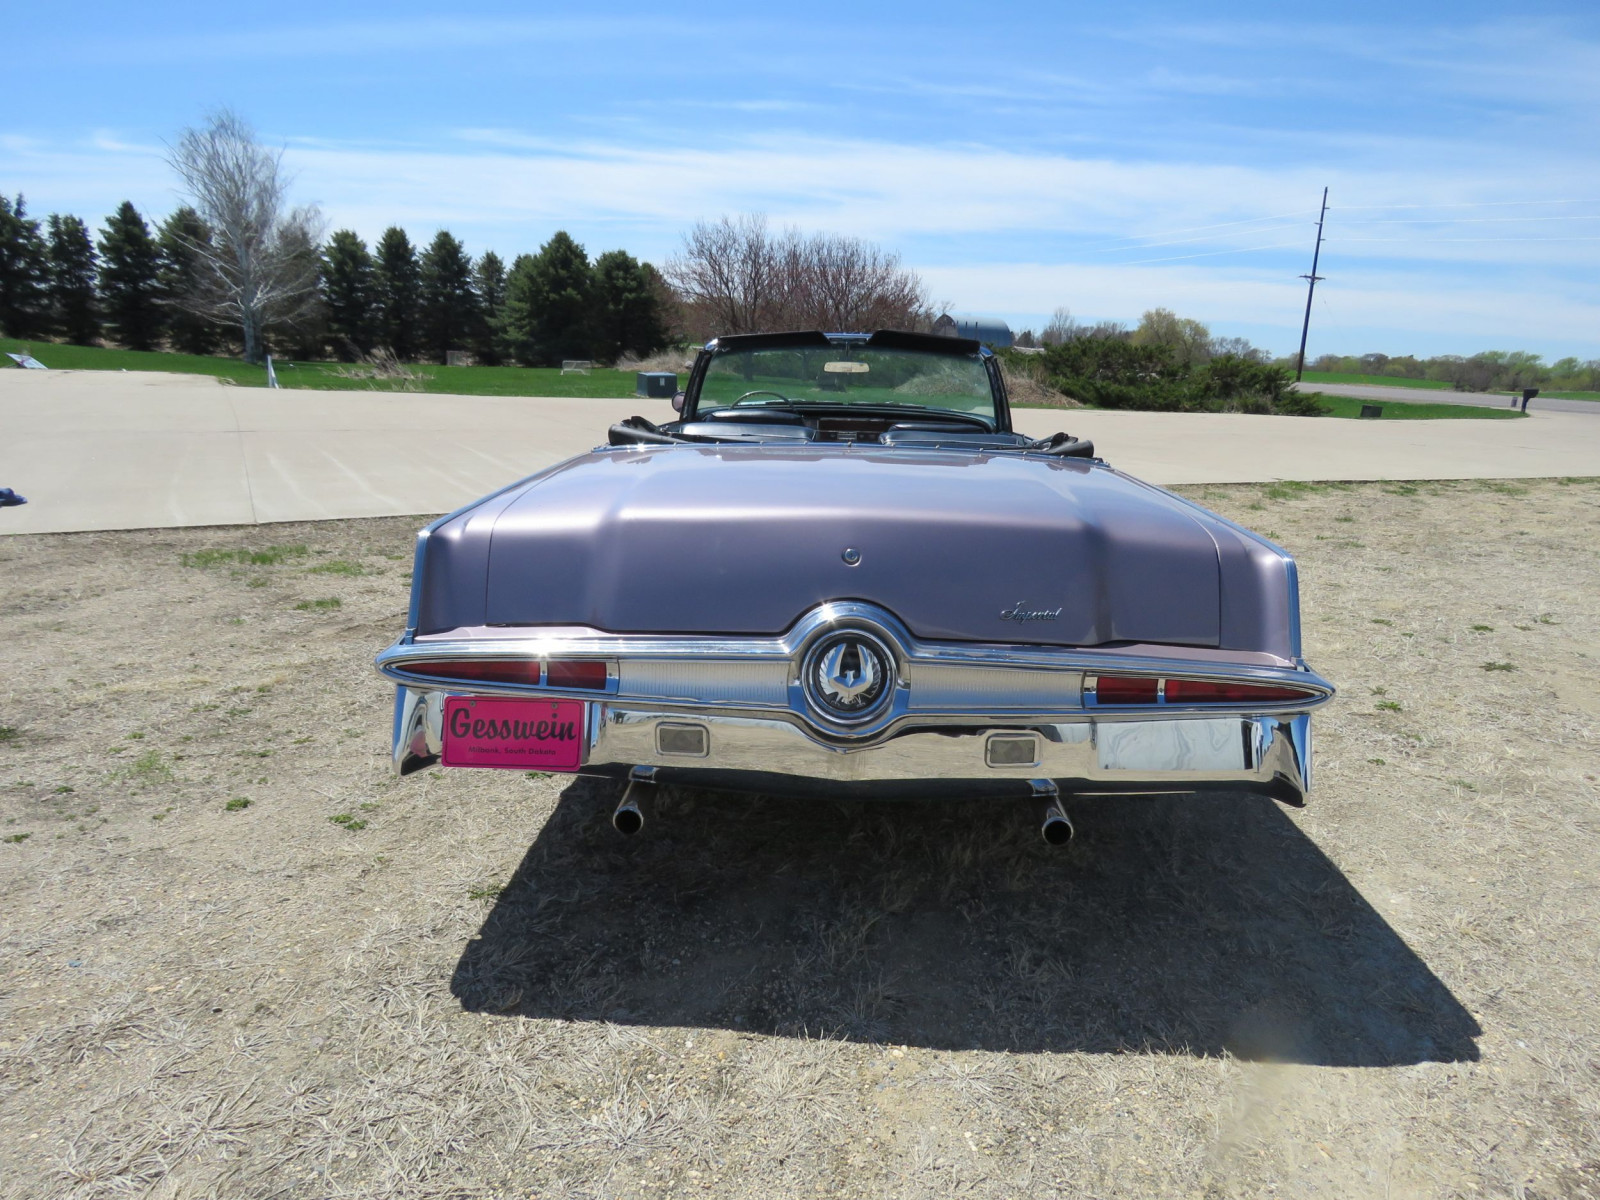 1966 Chrysler Imperial Crown Convertible - Image 6